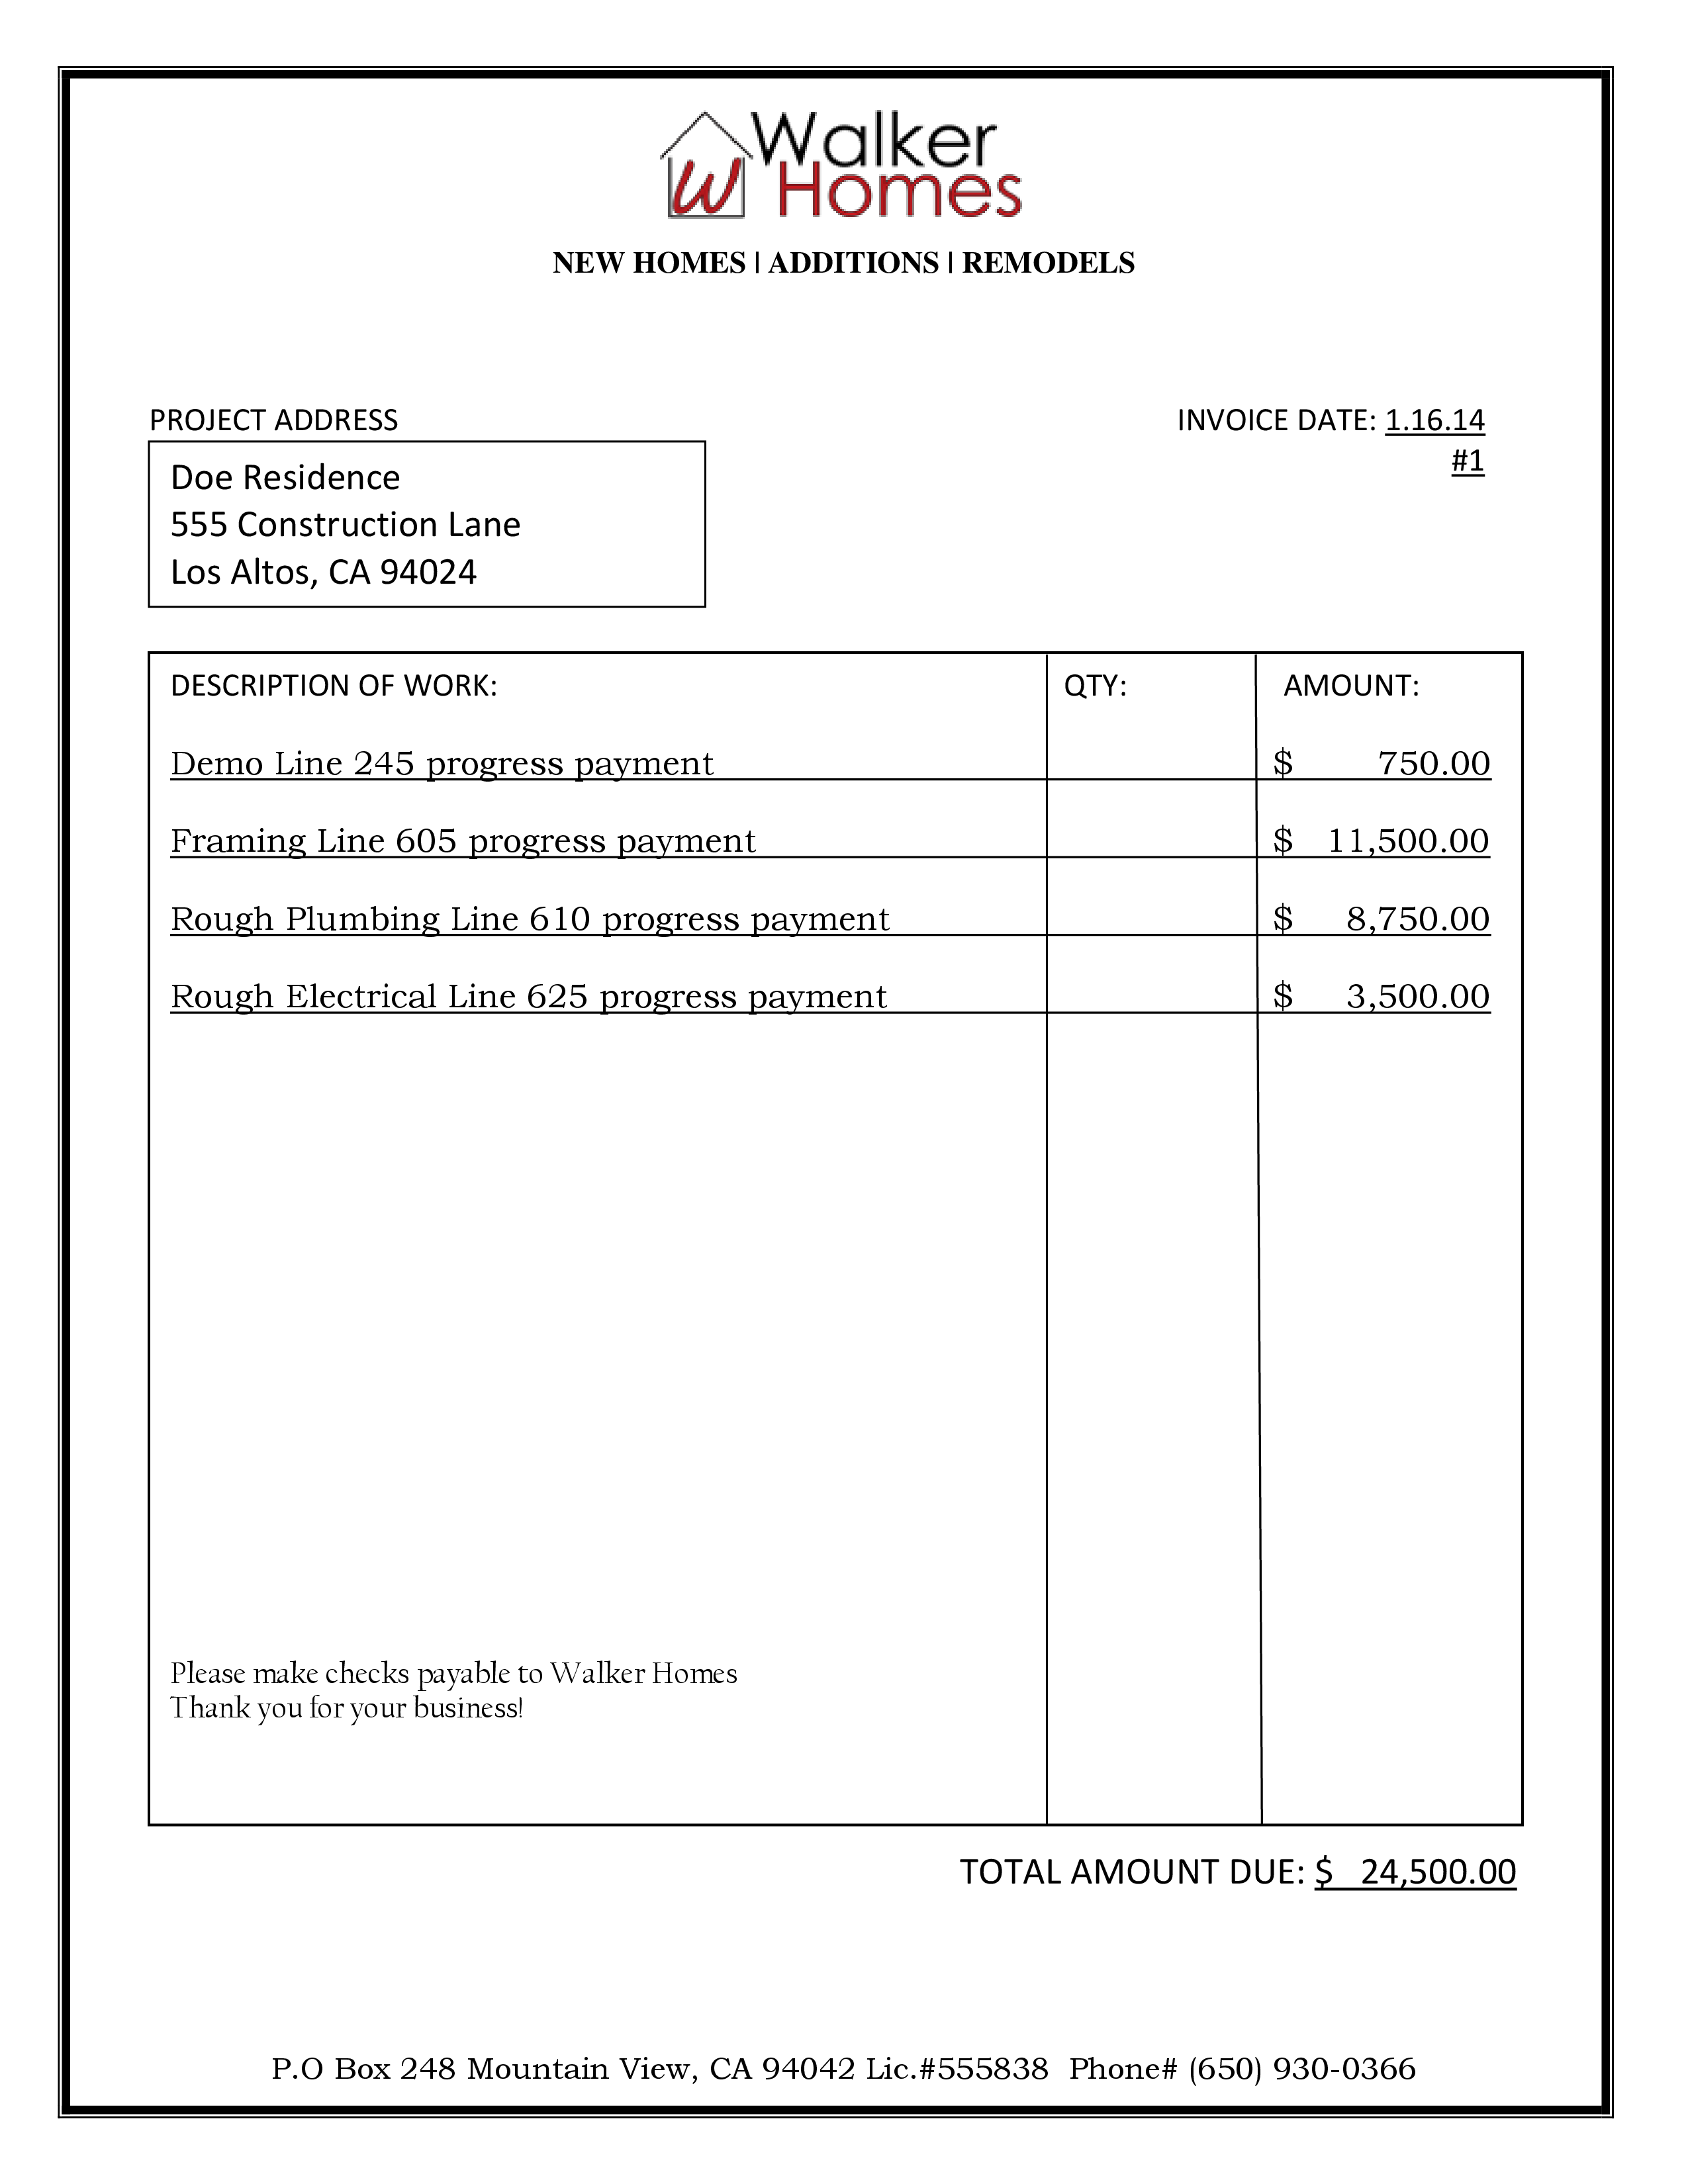 Soulfulpowerus  Fascinating How To Write A Simple Invoice Sample Survey Questionnaire  With Outstanding Example Of A Invoice Packing Slip Template Graduate Student Cv   With Agreeable Open Office Invoice Templates Also Microsoft Word Template Invoice In Addition Sending Invoice On Paypal And Catering Invoices As Well As Invoice Template Illustrator Additionally Product Invoice From Sklepco With Soulfulpowerus  Outstanding How To Write A Simple Invoice Sample Survey Questionnaire  With Agreeable Example Of A Invoice Packing Slip Template Graduate Student Cv   And Fascinating Open Office Invoice Templates Also Microsoft Word Template Invoice In Addition Sending Invoice On Paypal From Sklepco